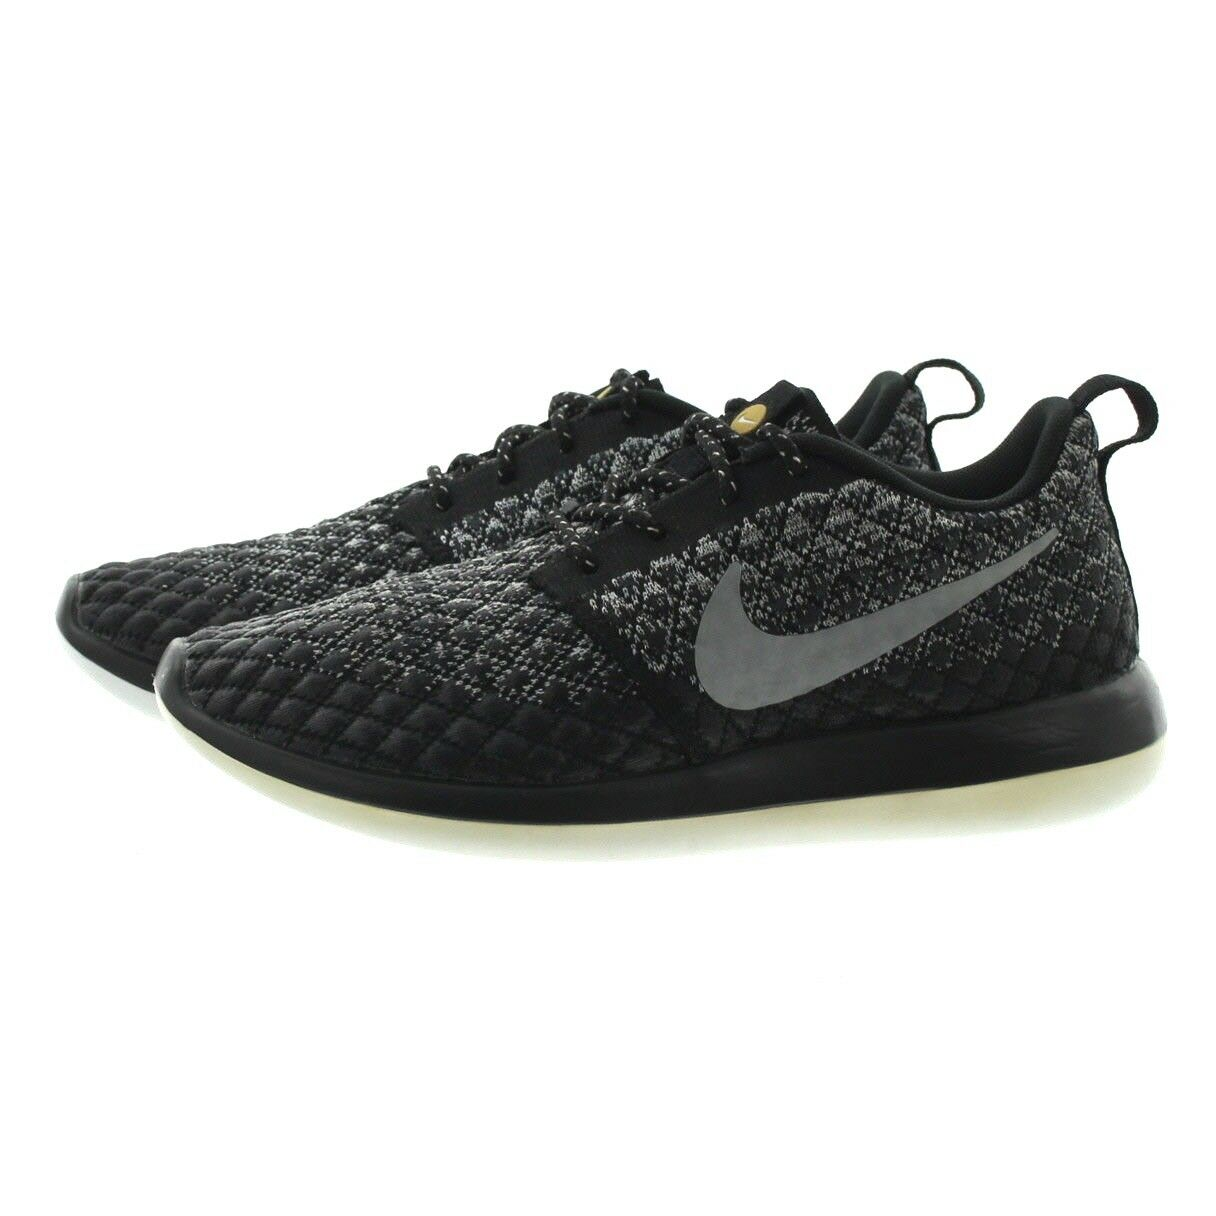 bf089c1705dc Nike W Roshe Two Flyknit 365 Running Training Shoe 861706 Womens Sizes 7  for sale online